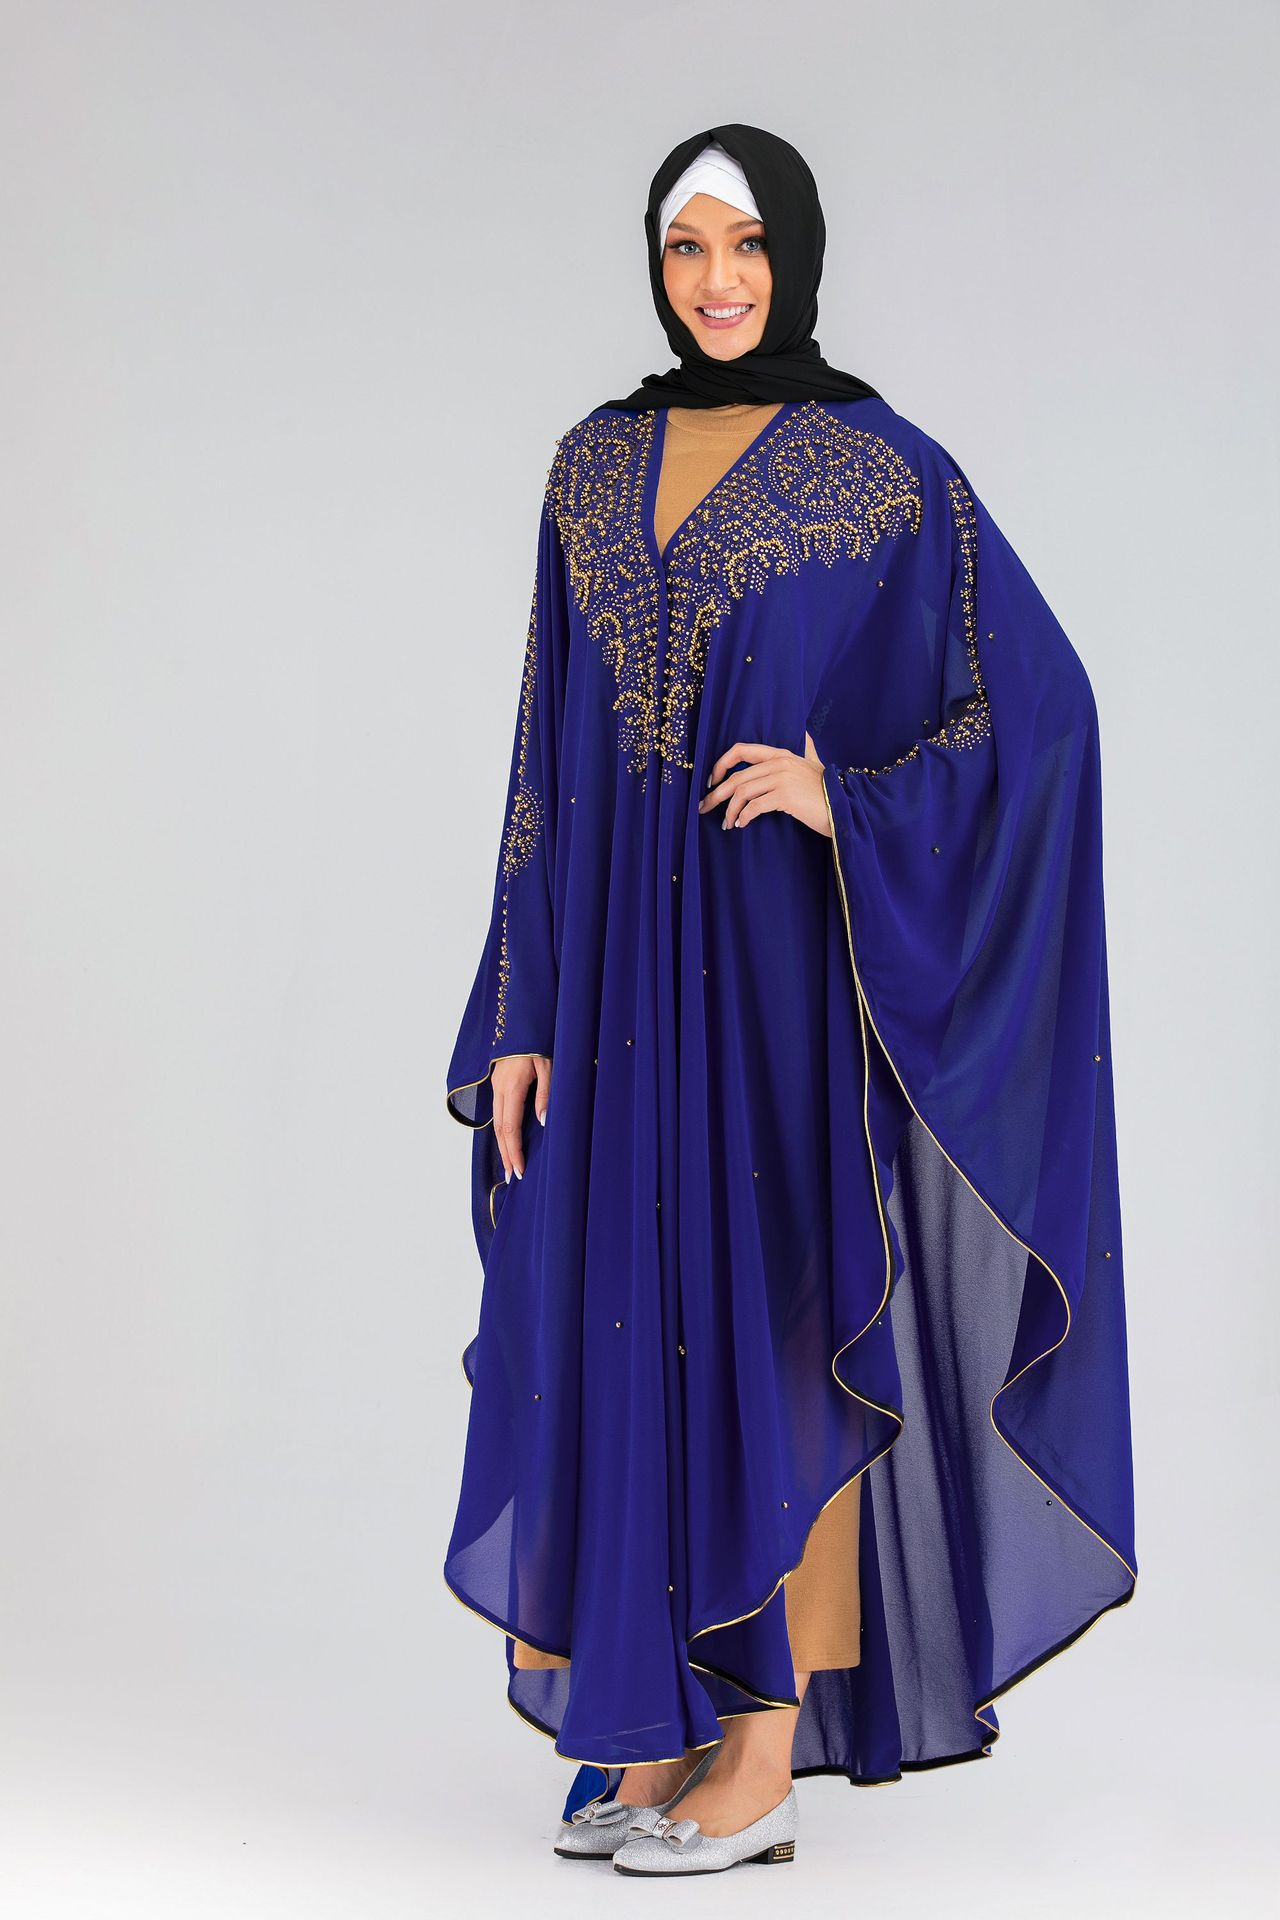 Niqab Dubai Abaya Kimono Muslim Cardigan Hijab Dress Abayas For Women Kaftan Caftan Maroc Turkish Islamic Clothing Djelaba Femme